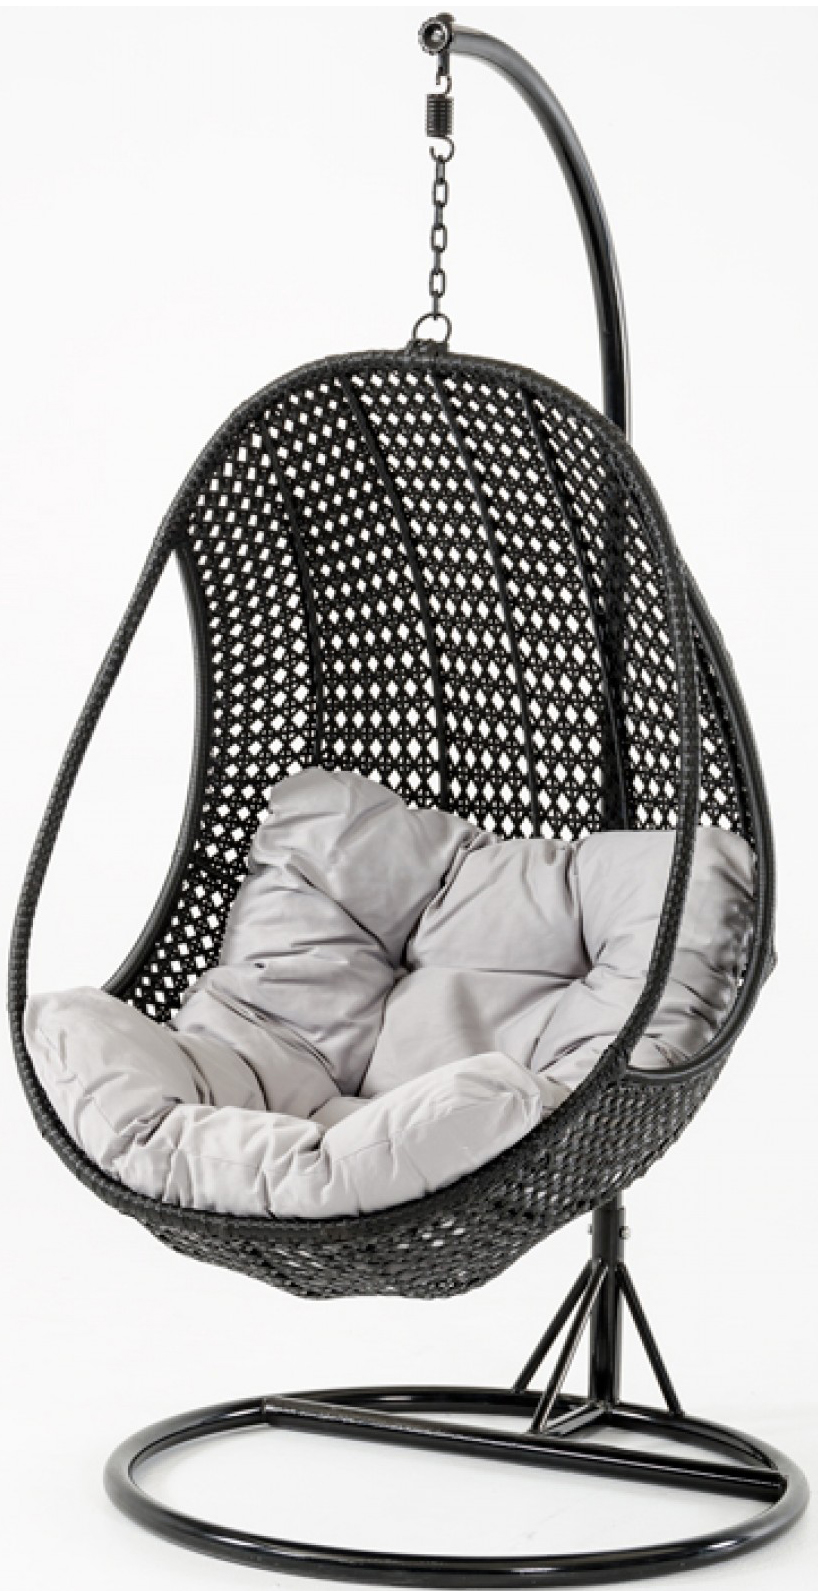 Sardinia Rattan Pod Hanging Chair | Outdoor Patio Furniture